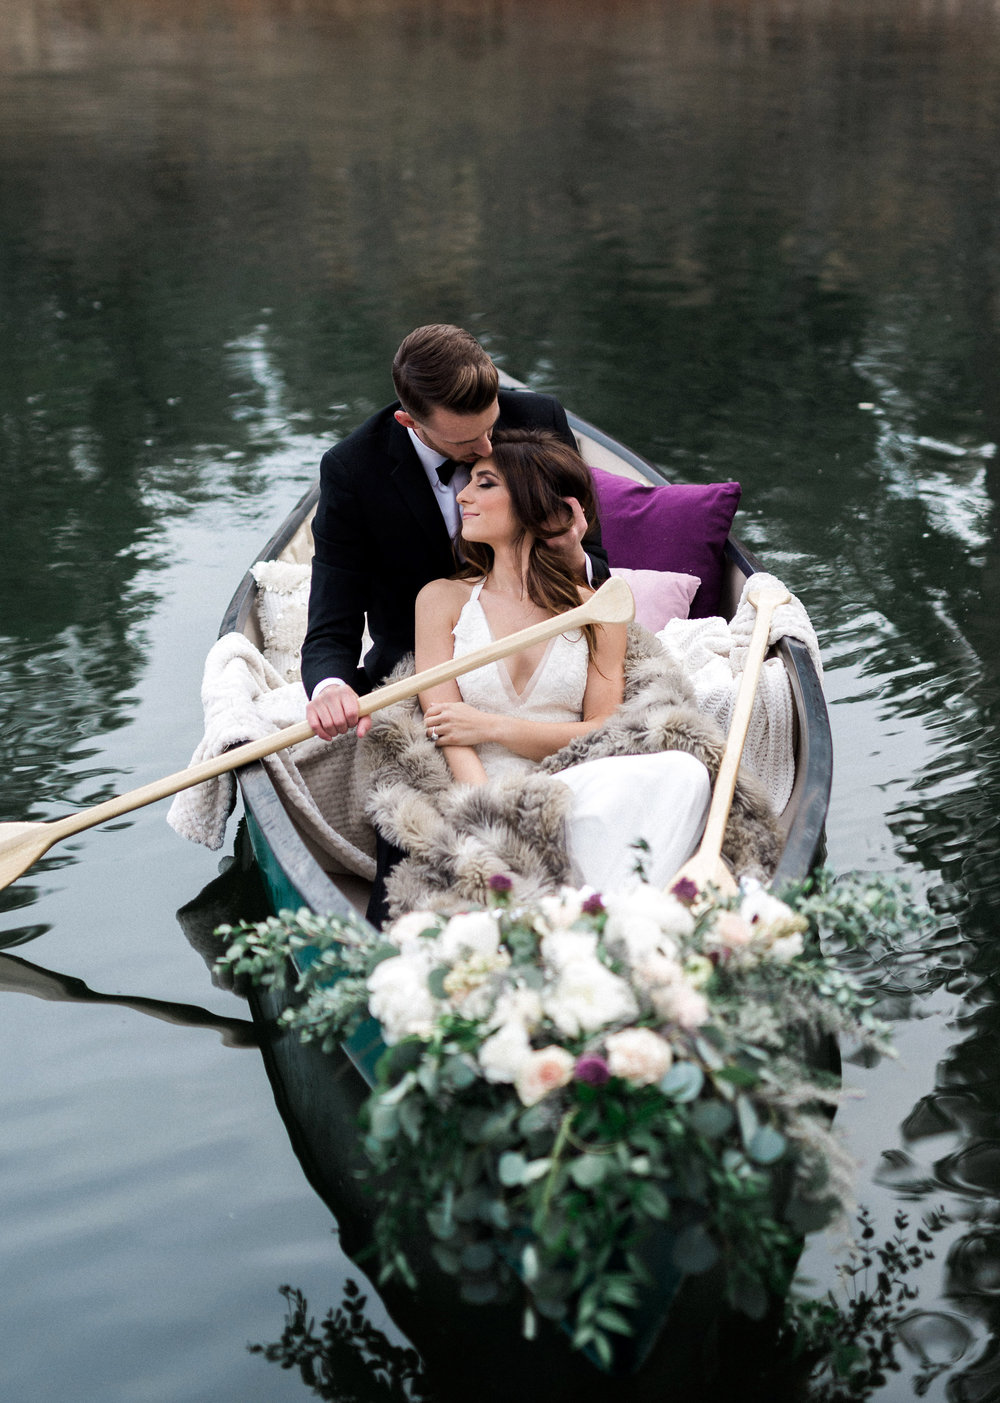 Arizona Lakeside Winter Elopement with Saje Photography | Shotgunning for Love Letters | Bride and Groom in Canoe